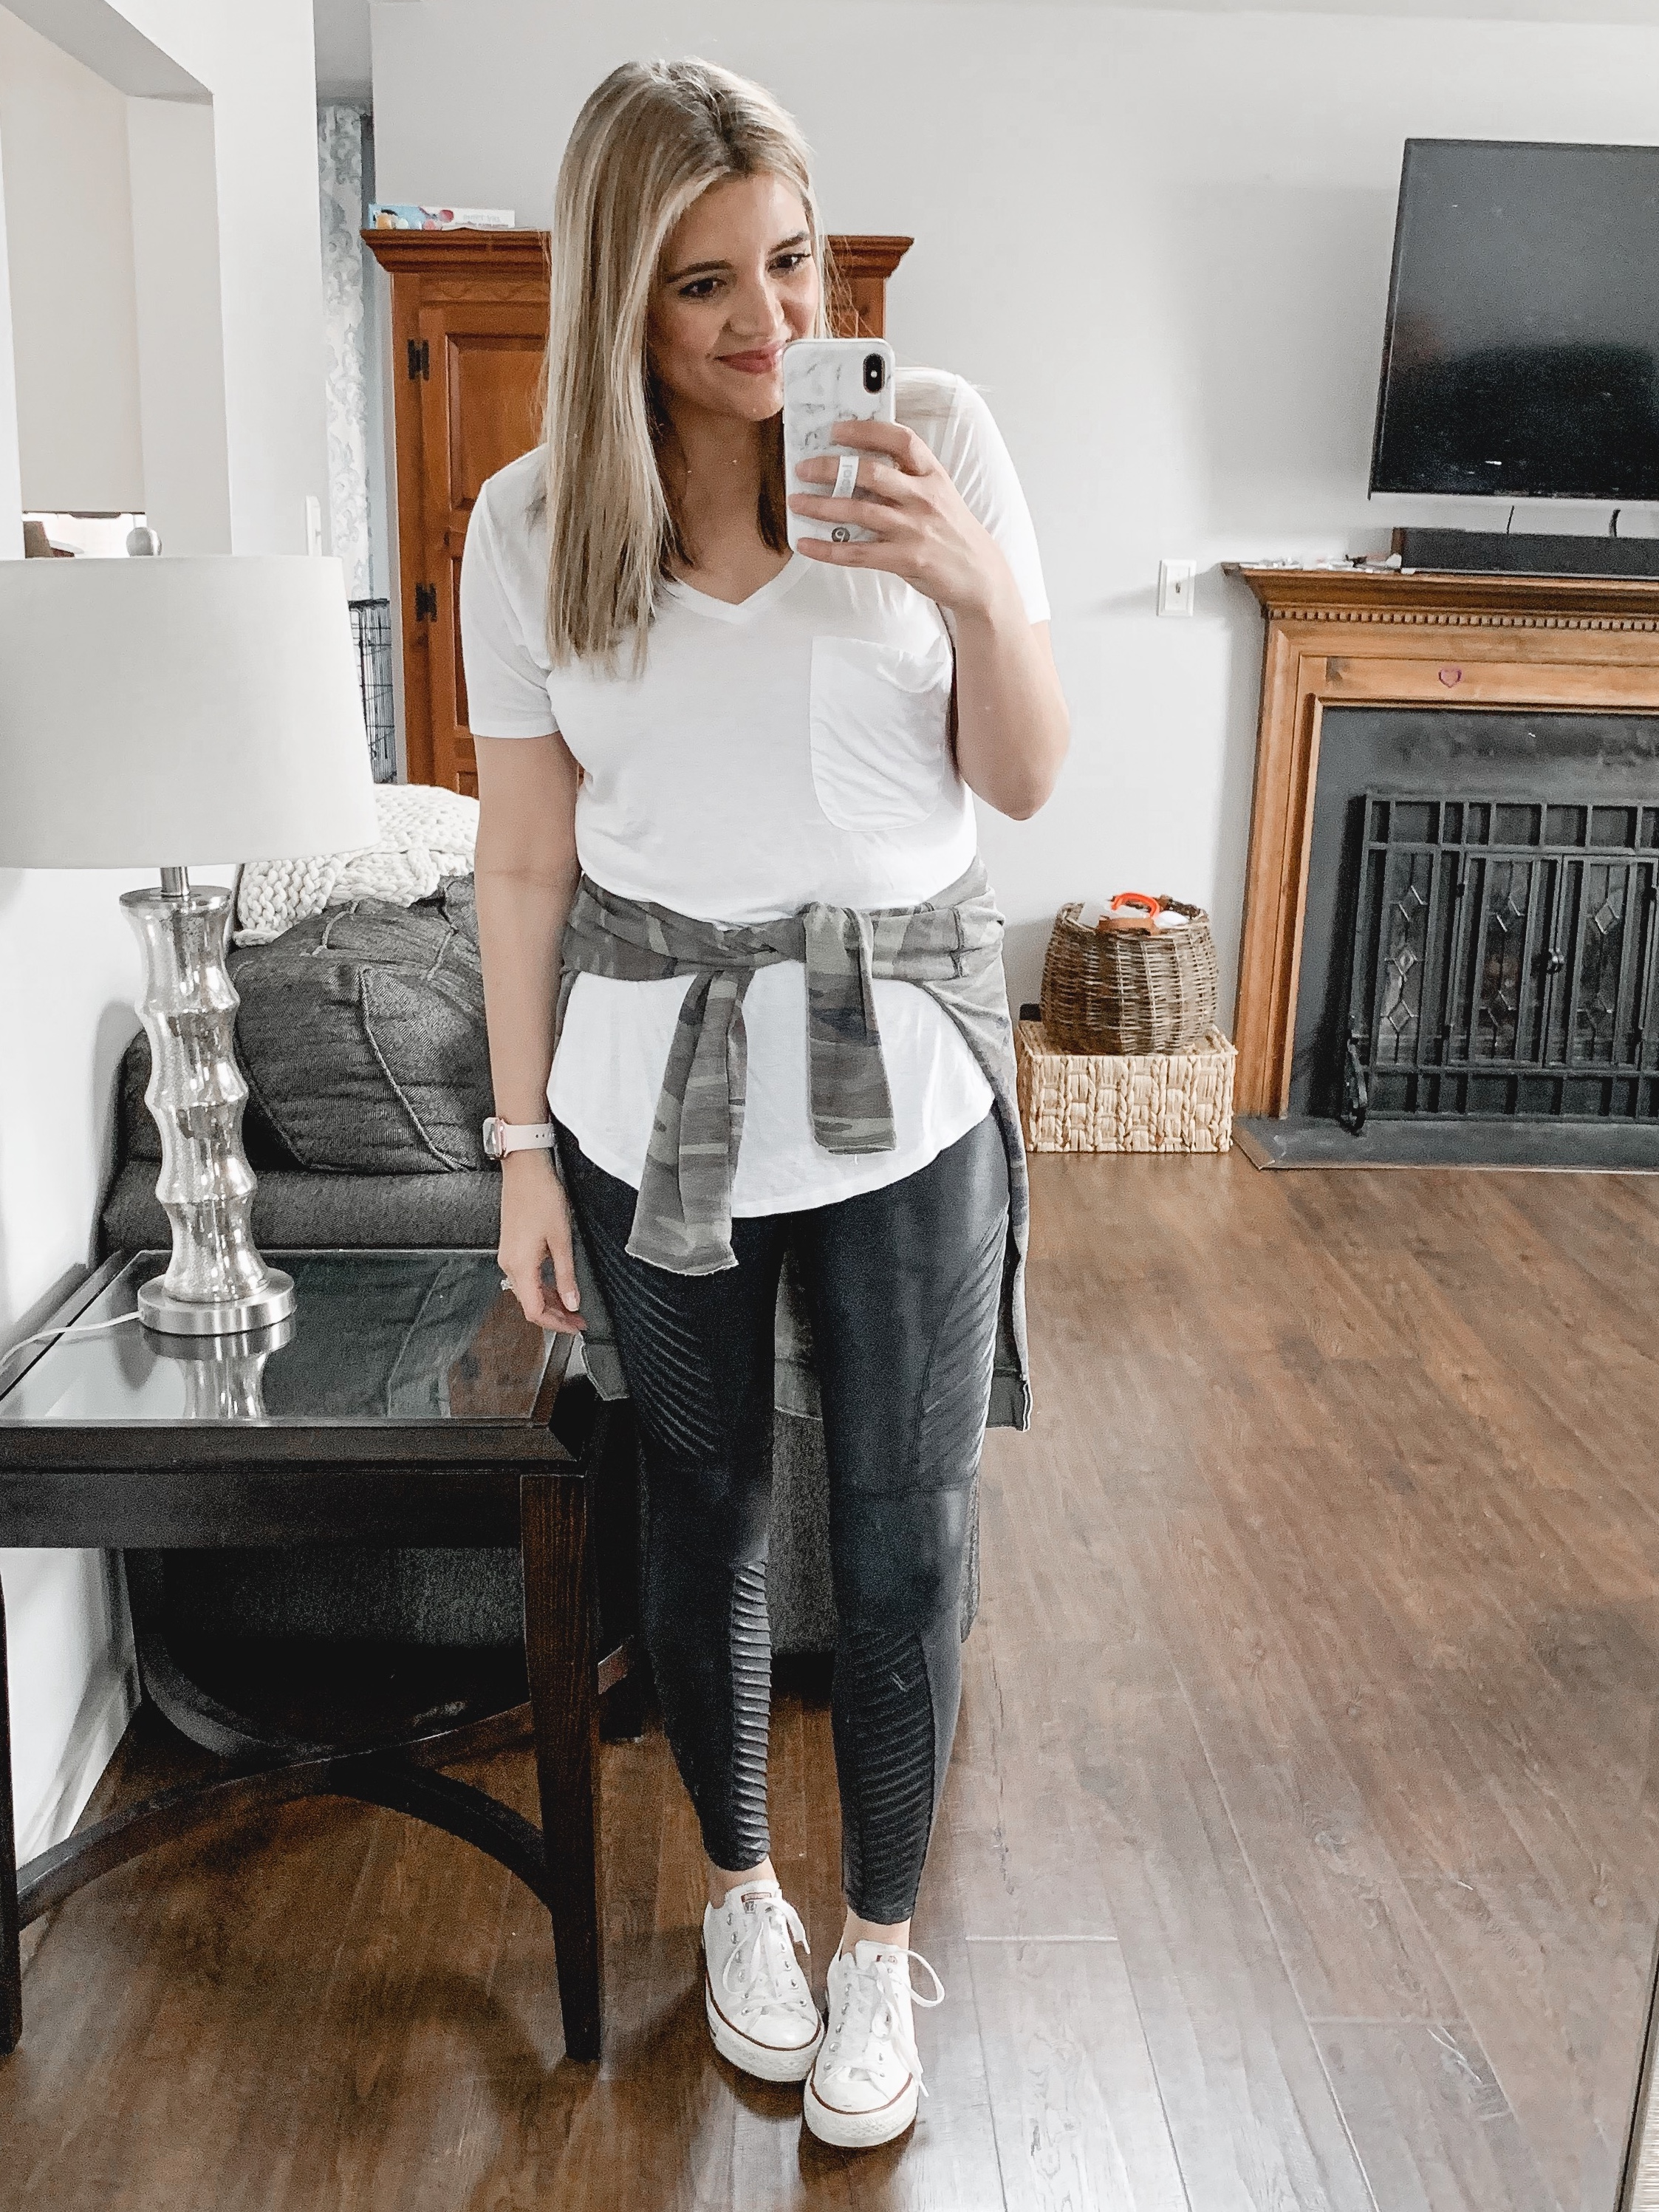 Affordable style blogger Lauren Dix shares her top Shopbop sale picks, including her favorite Spanx faux leather leggings!